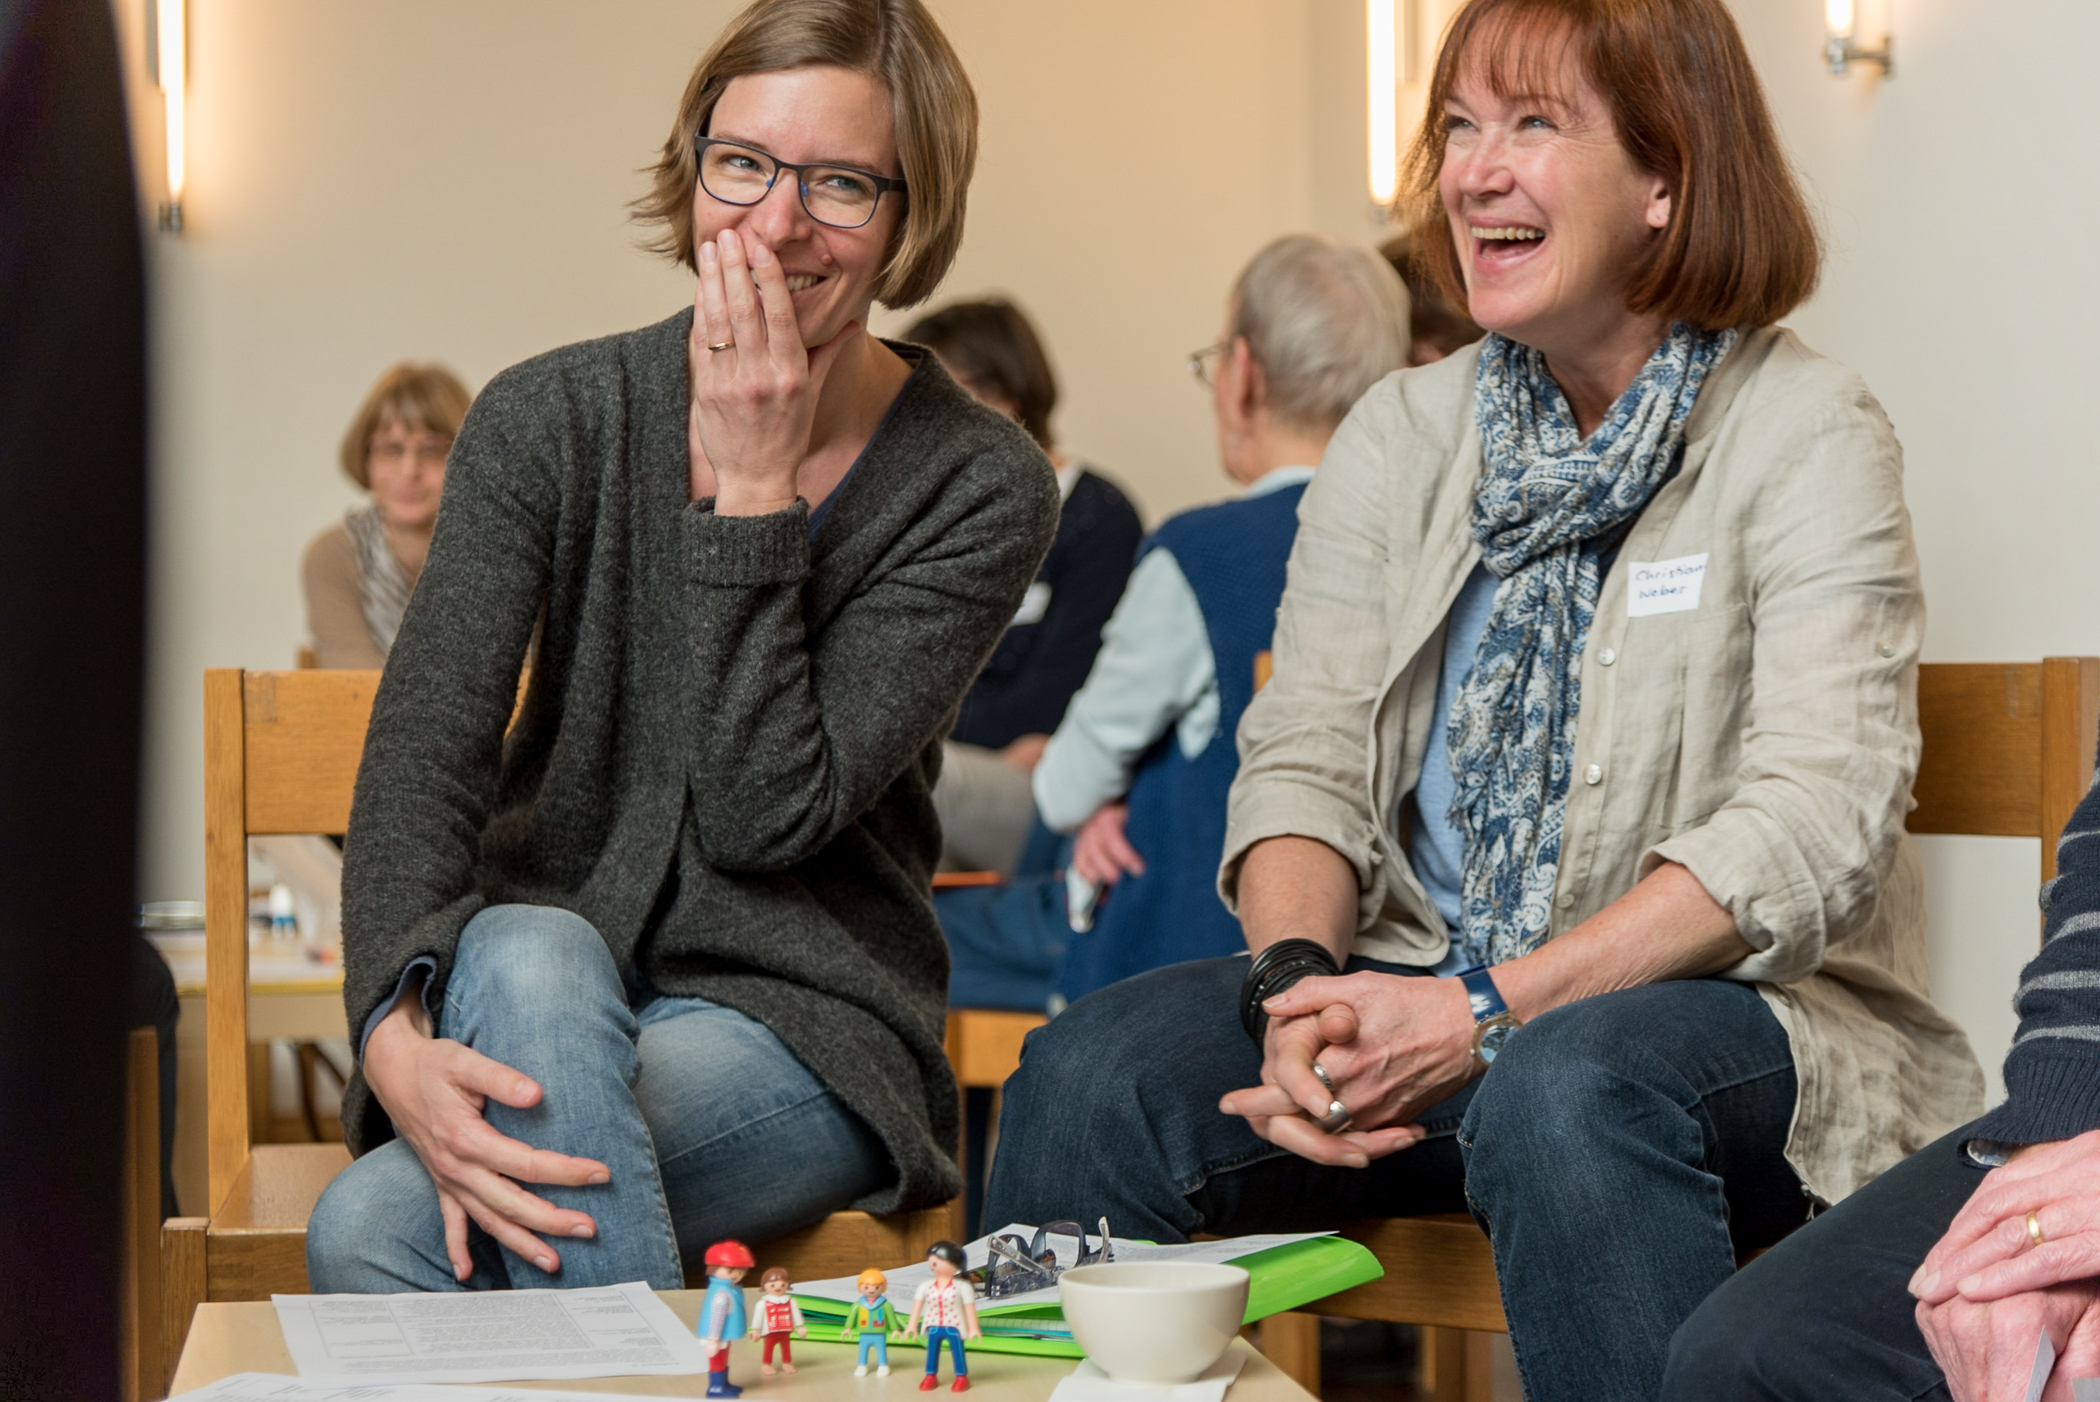 Mara Tobler and Chrisitane Weber laugh at their execution of the sample language-learning lesson they presented to their teammates in the German for Refugees course held at the Gellertkirche in Basel, Switzerland. Sample lessons are presented to larger groups of co-participants. Mara and Chrisitane's mother tongue is Swiss German [gsw]. The German for Refugees course is a train-the-trainer course designed to equip Swiss to teach their language to recently arriving refugees.